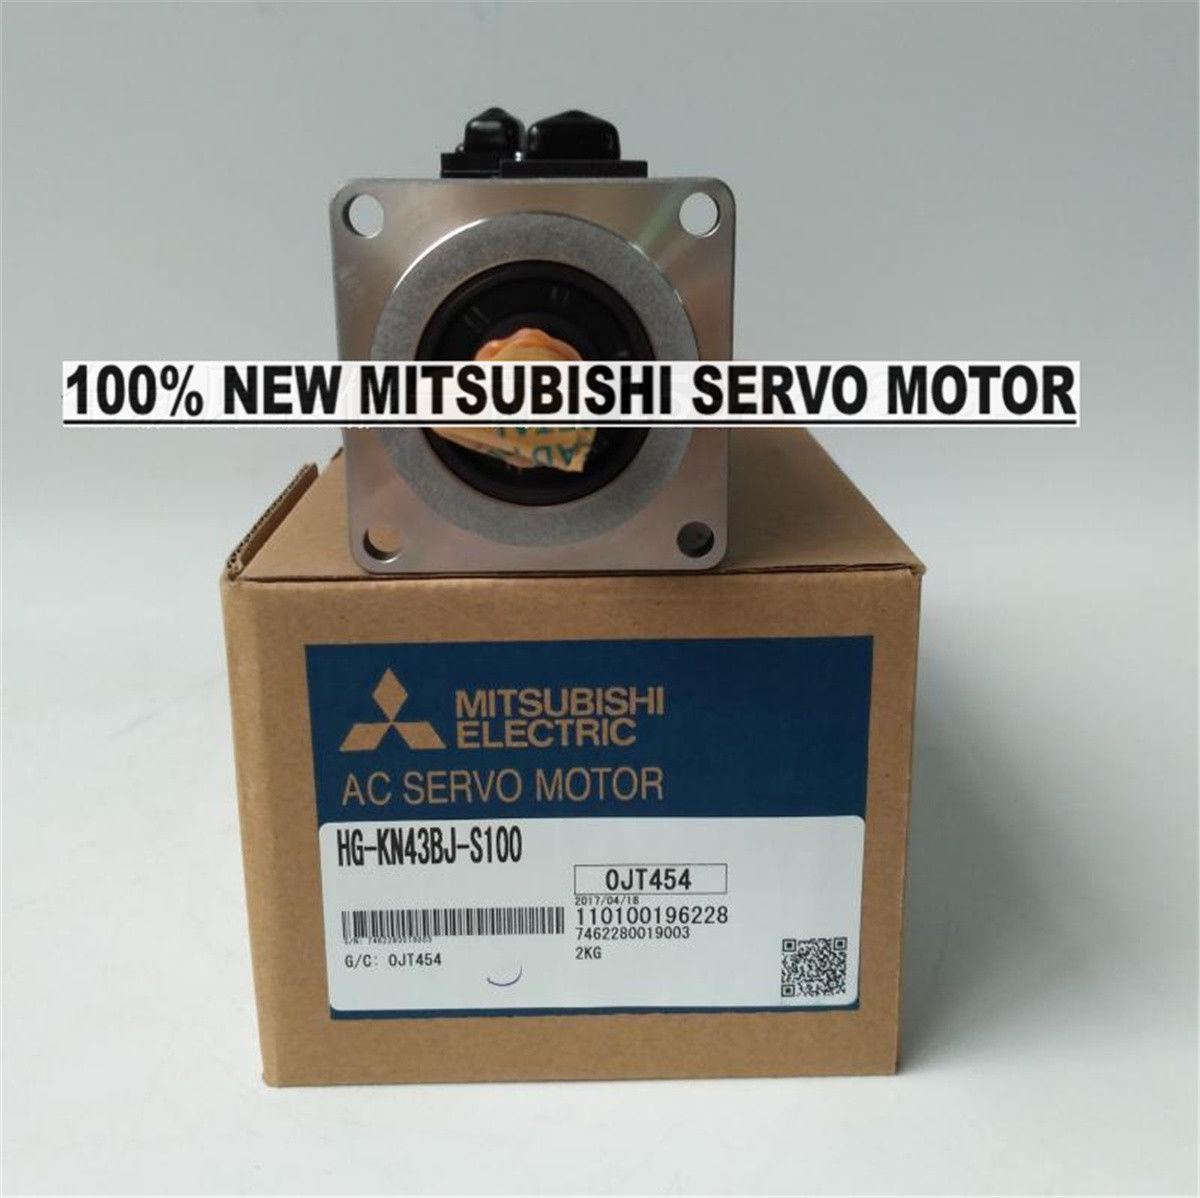 GENUINE NEW Mitsubishi Servo Motor HG-KN43BJ-S100 in box HGKN43BJS100